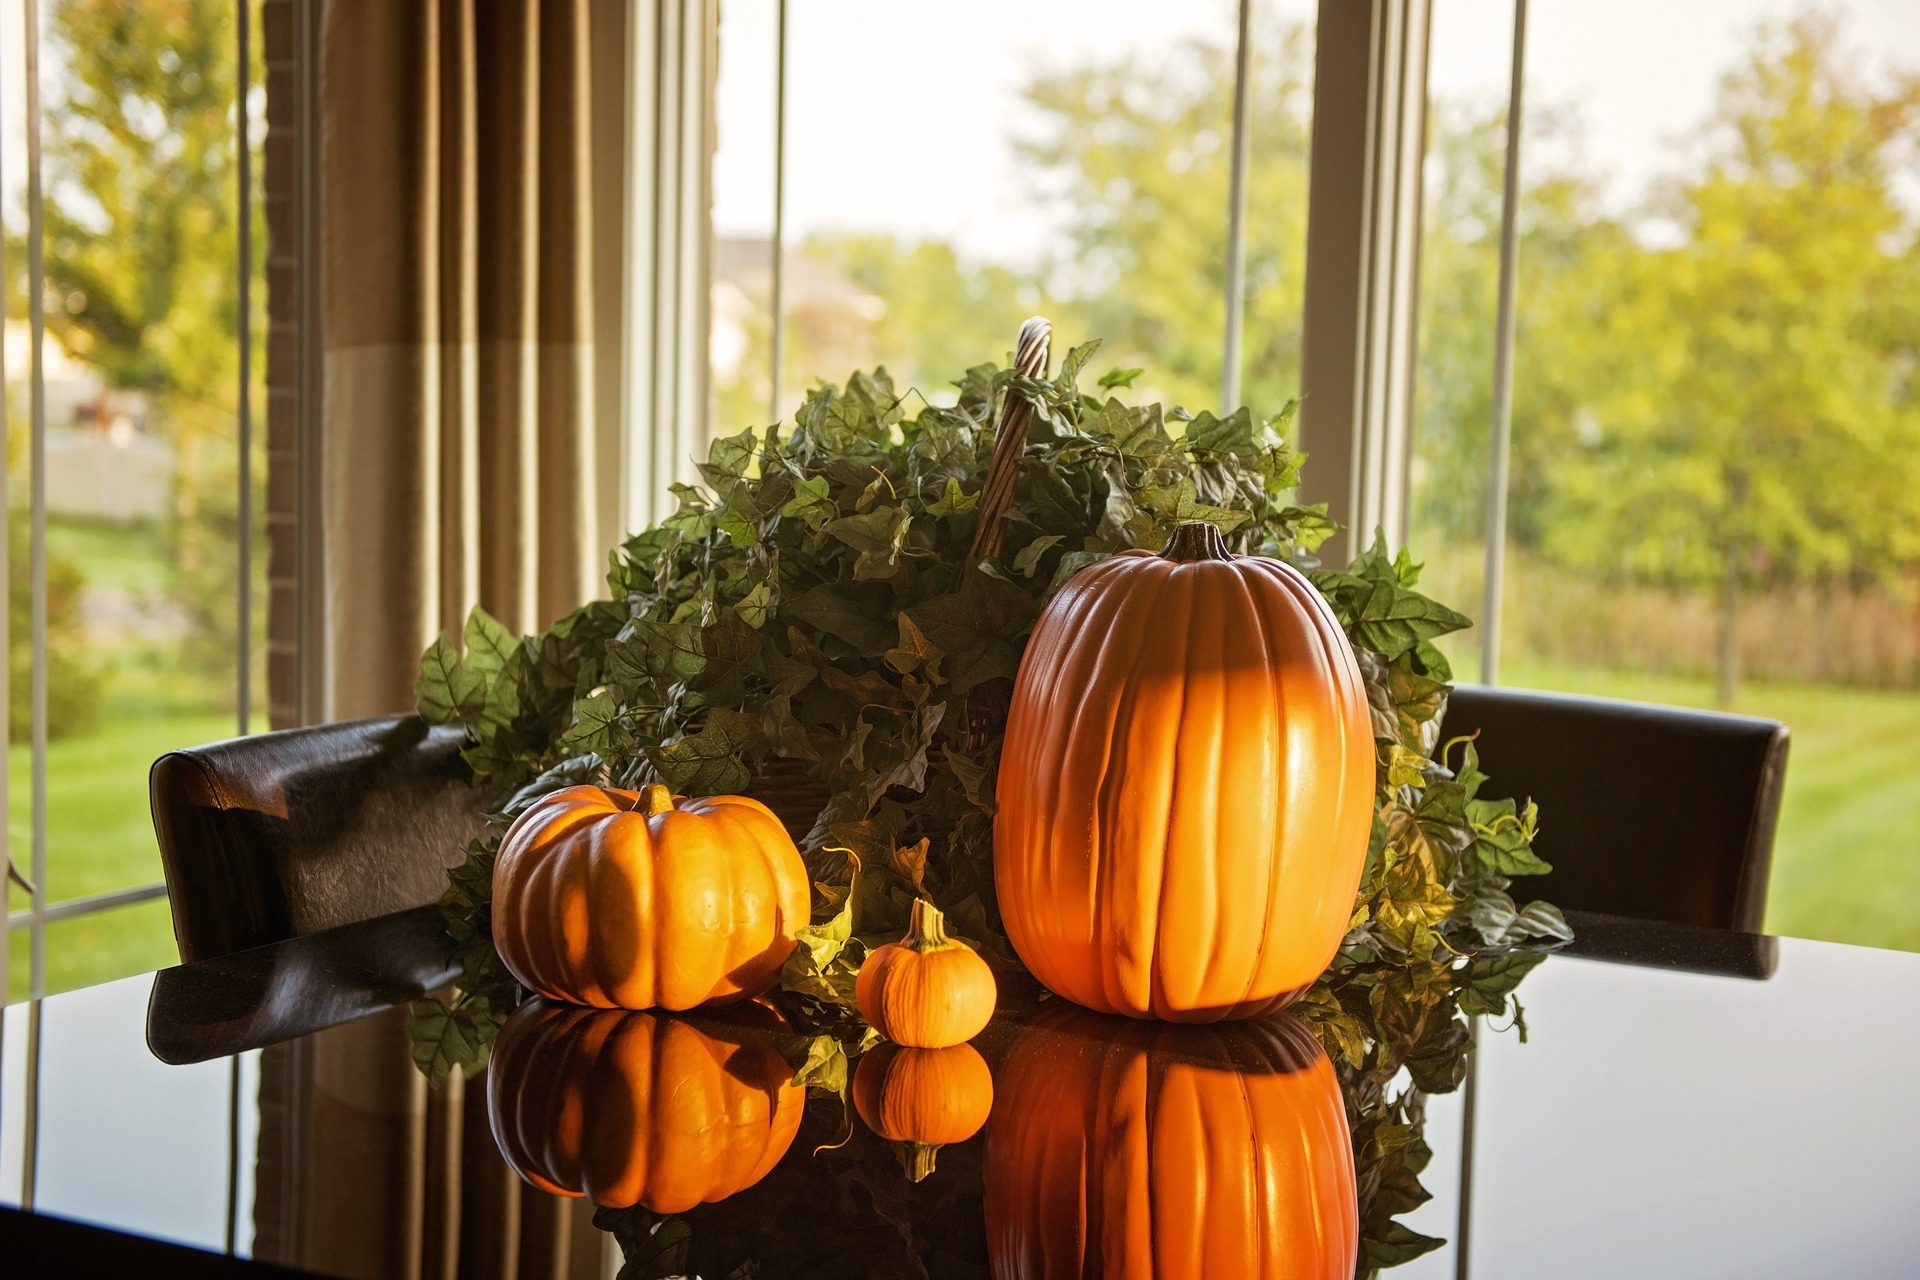 You are currently viewing Fall Decor Inspiration: Pumpkins, Apples + More